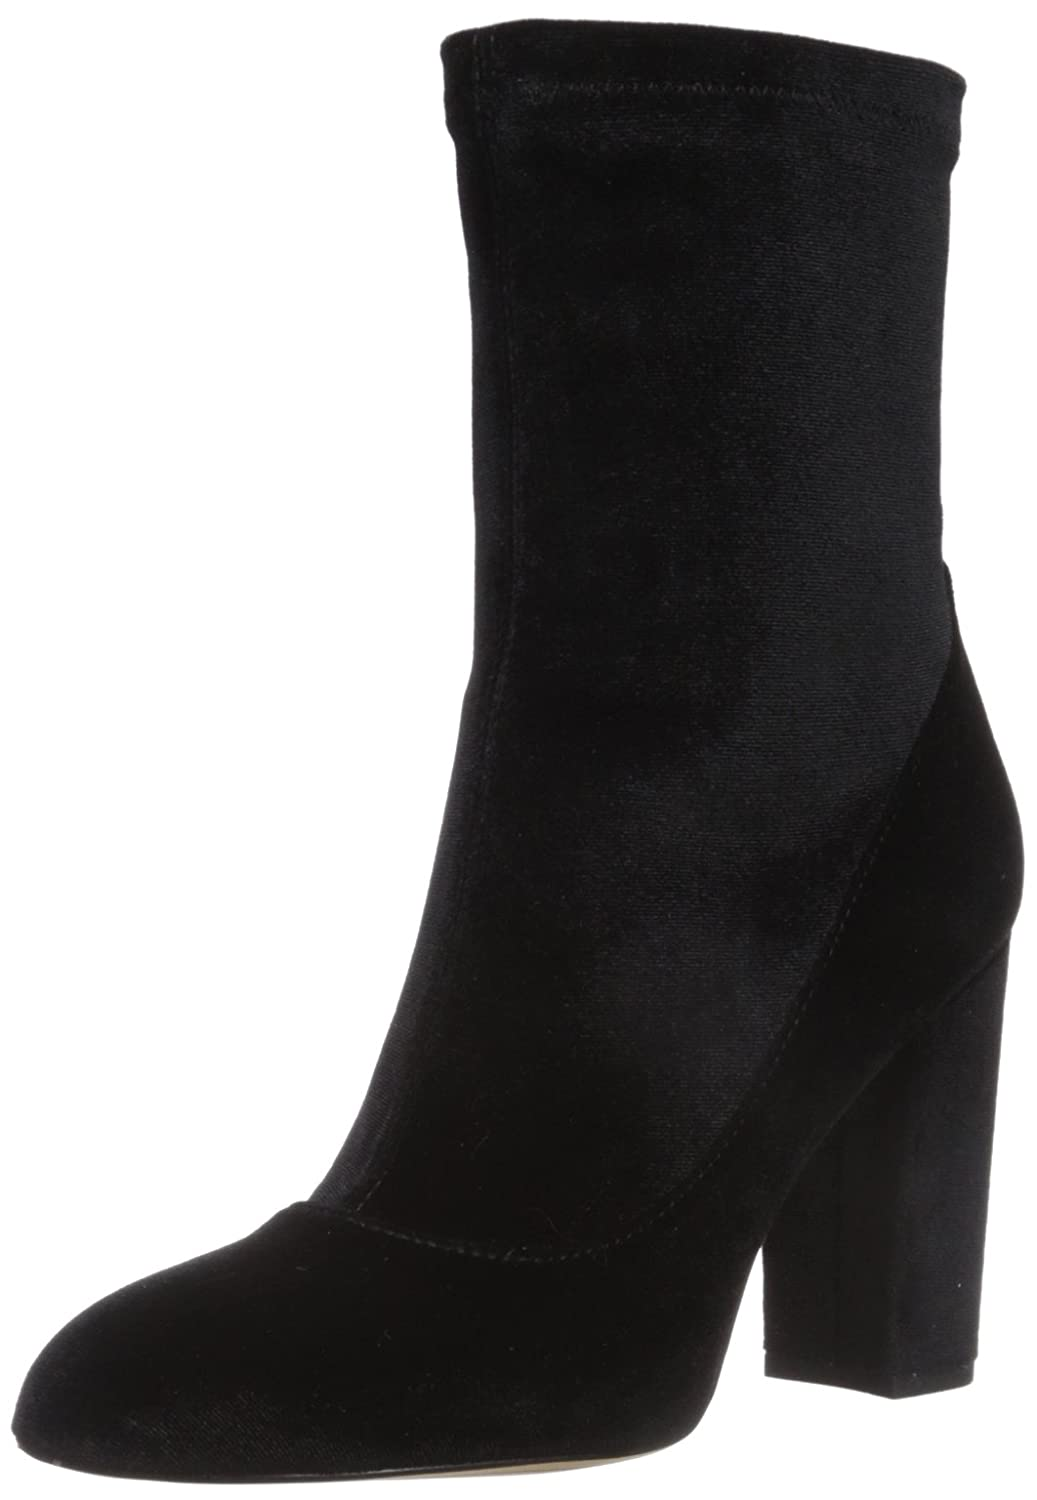 Sam Edelman Women's Calexa Fashion Boot B071R53CX4 9.5 B(M) US|Black Stretch Velvet